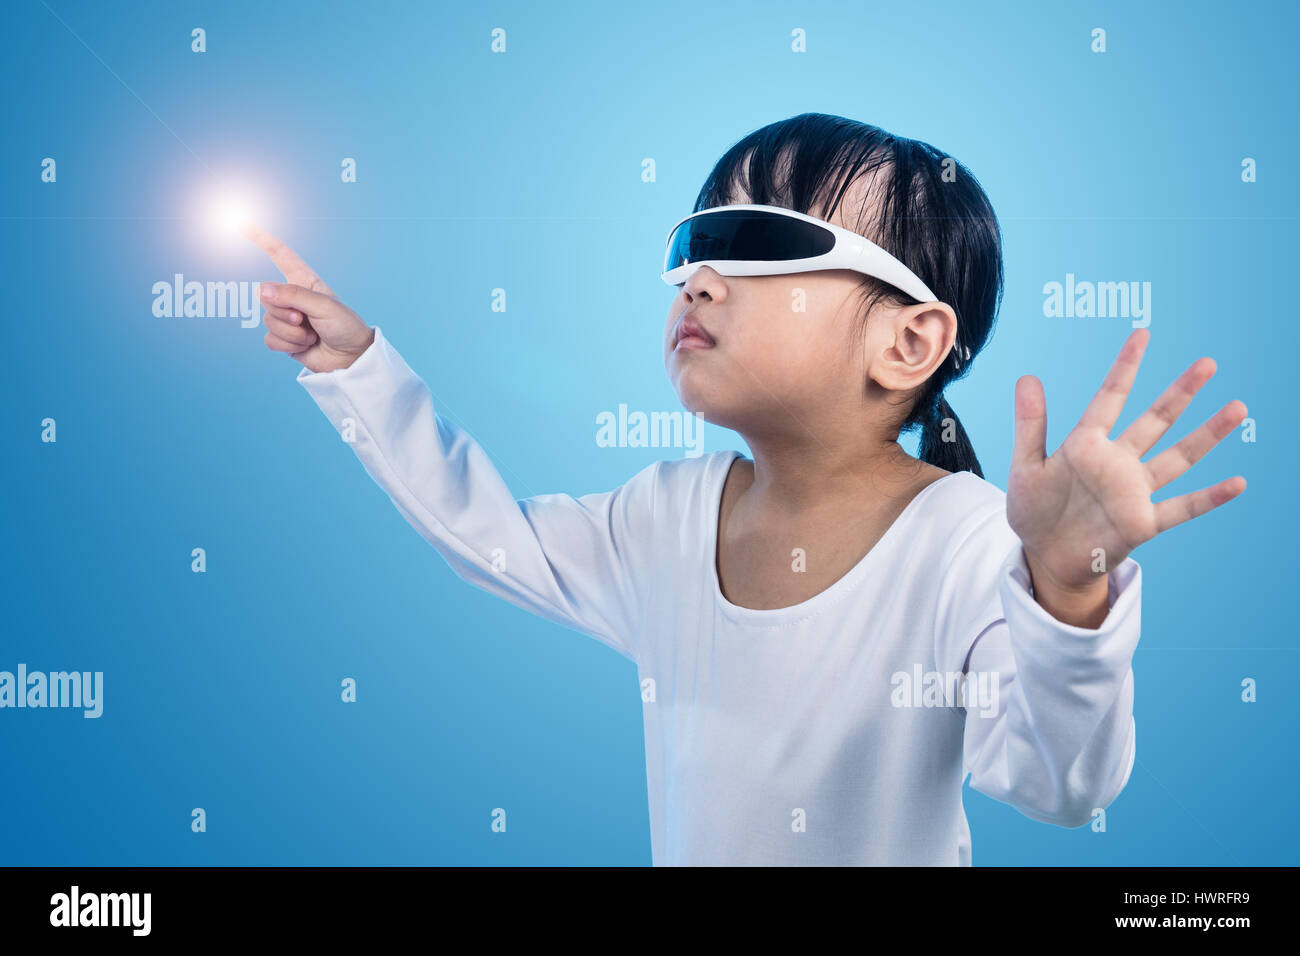 Asian Chinese little girl wearing futuristic eyeglassses and costumes act as cyborg in isolated background - Stock Image